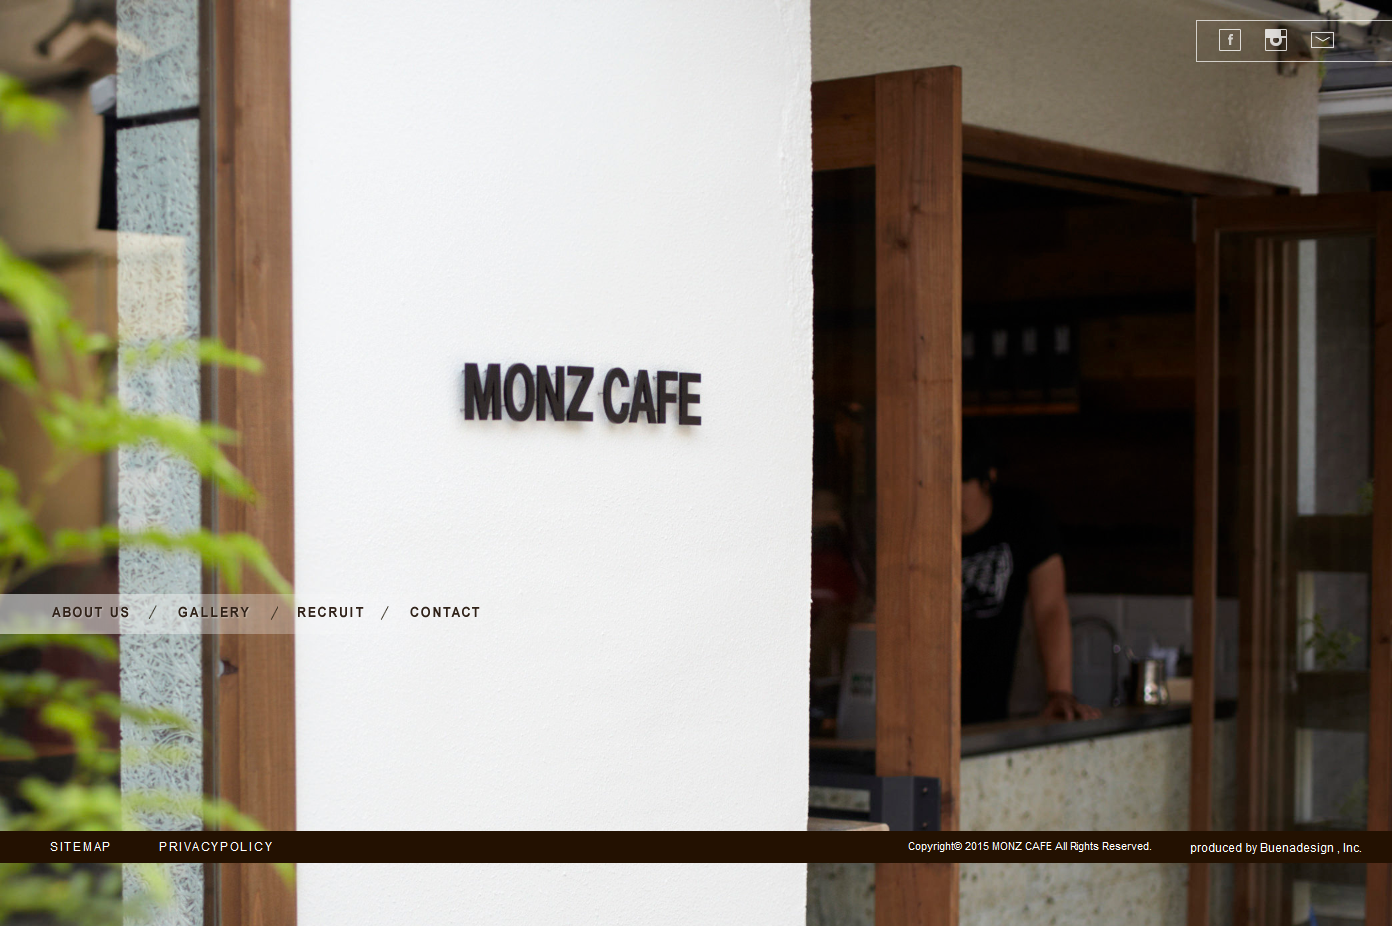 MONZ CAFE(モンズ カフェ)